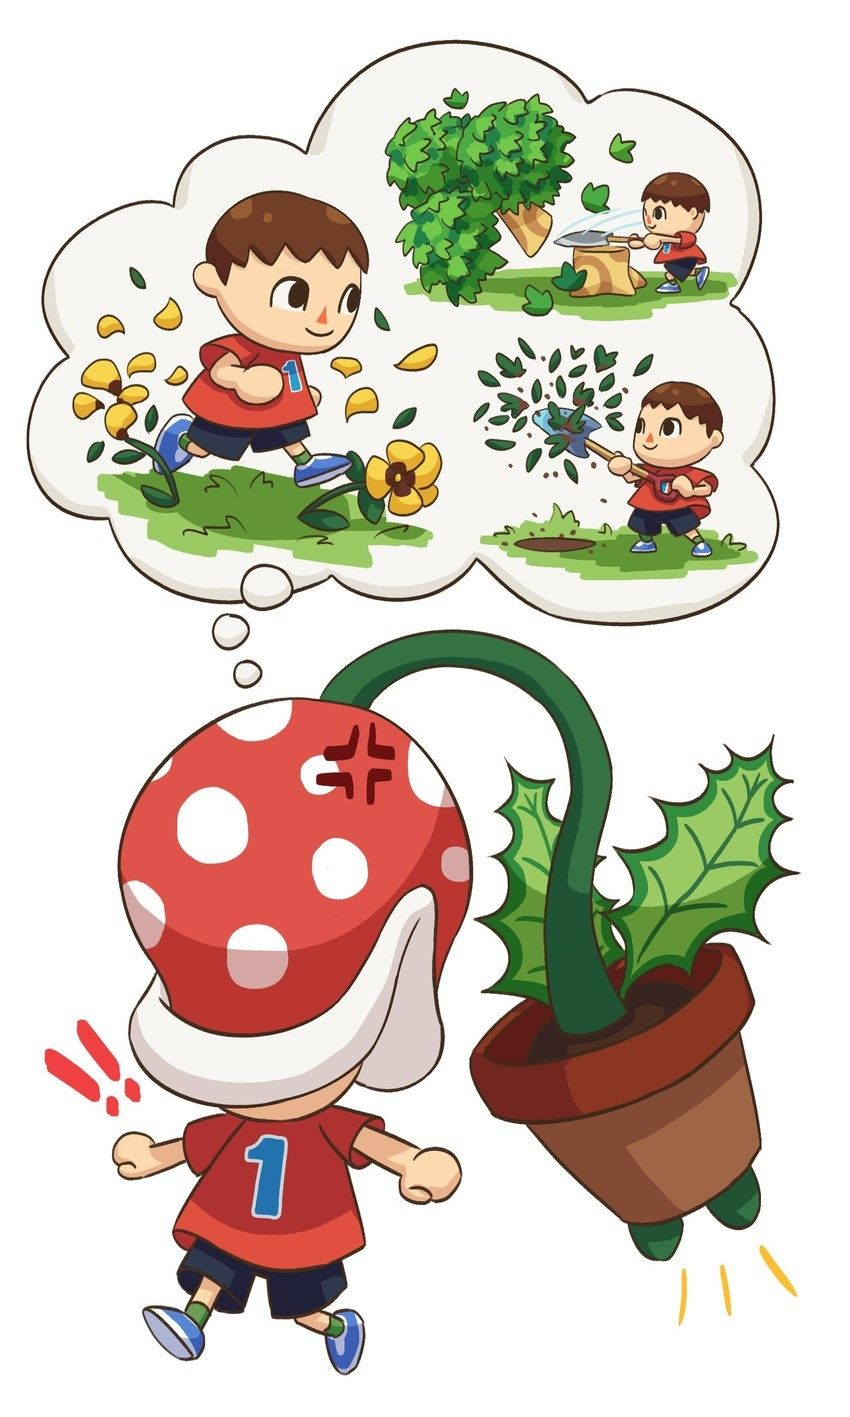 Piranha Plant Kirby Memes Artwork And Reactions 8 Out Of 10